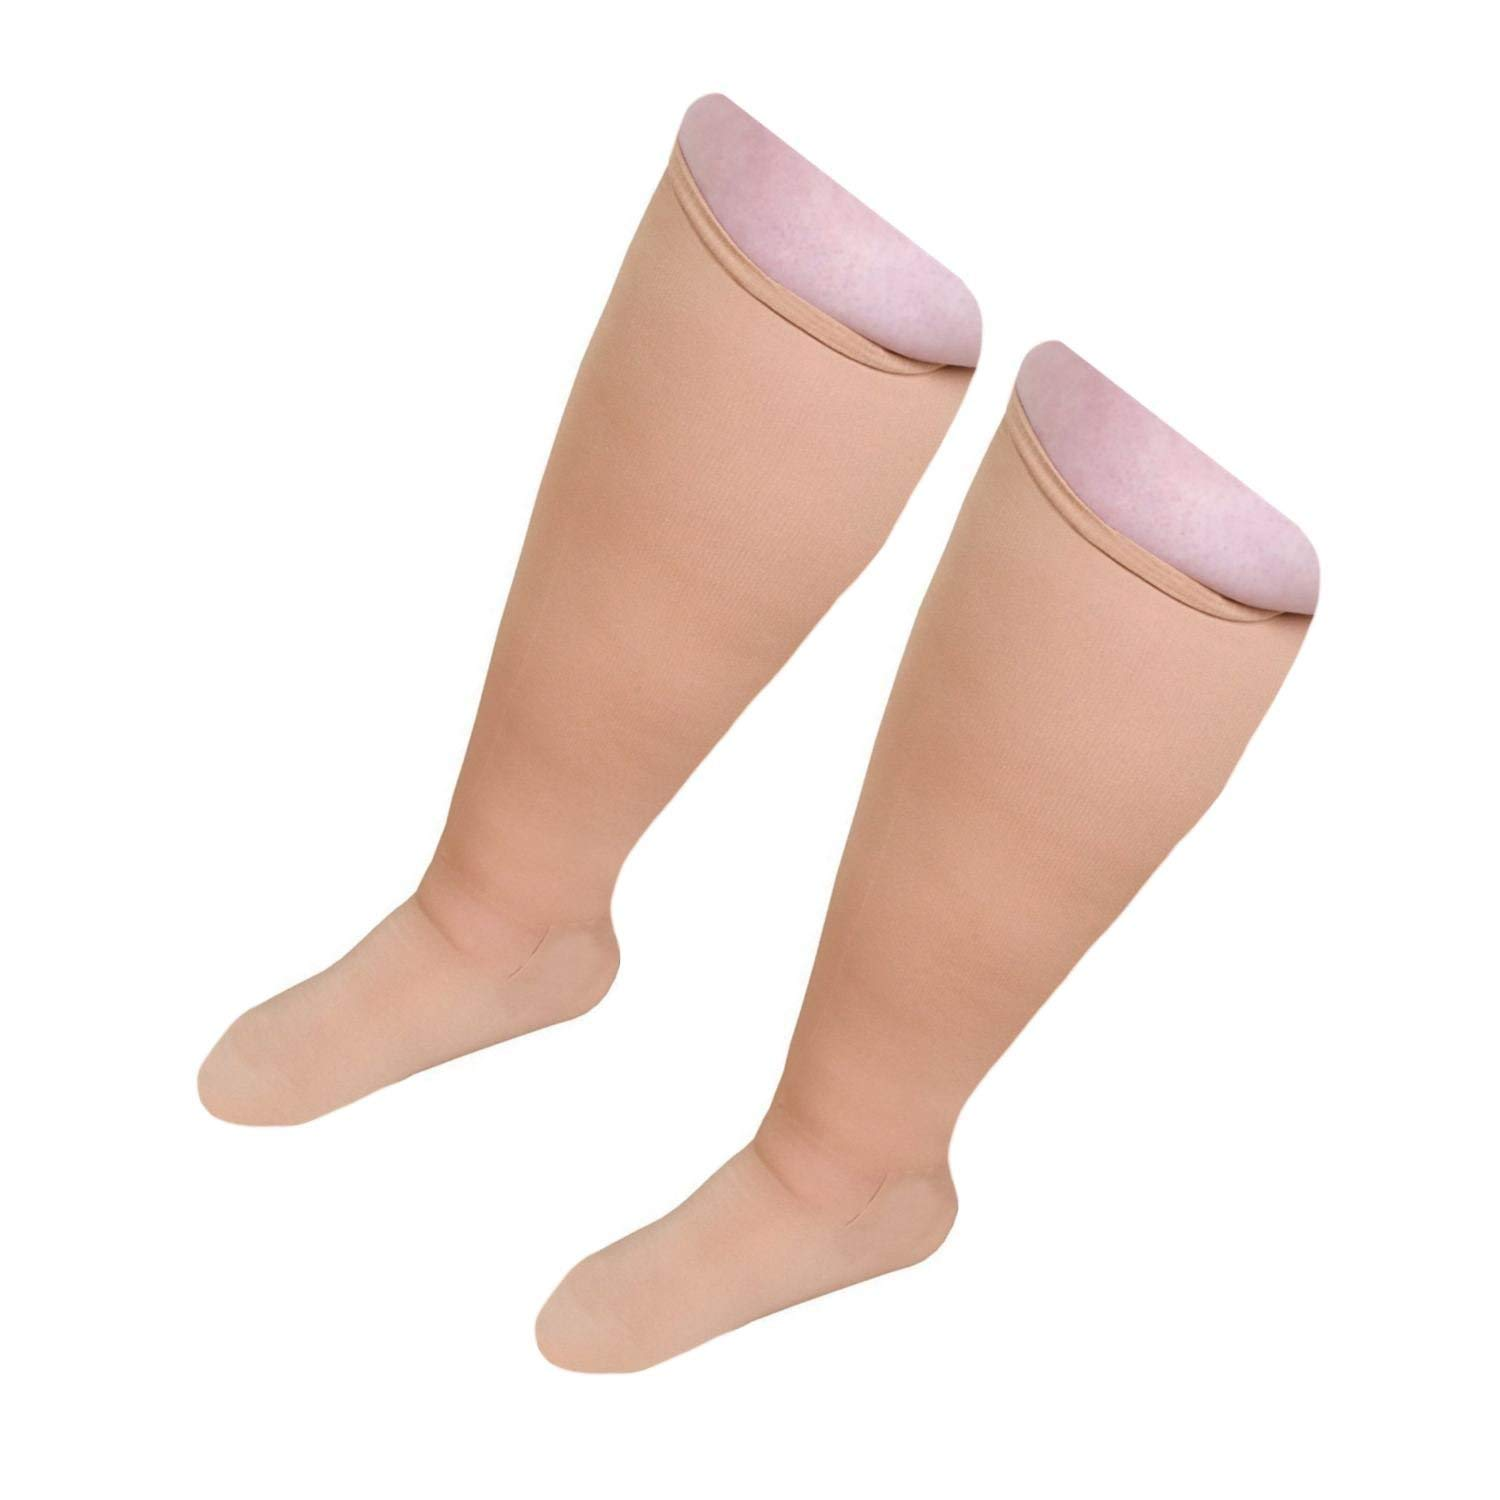 Starmace Extra Big Wide Full Plus Size Calves 20-30 mmHg Compression Knee High Length Foot Ankles Unisex Socks (Beige Closed Toe, XXX-Wide)